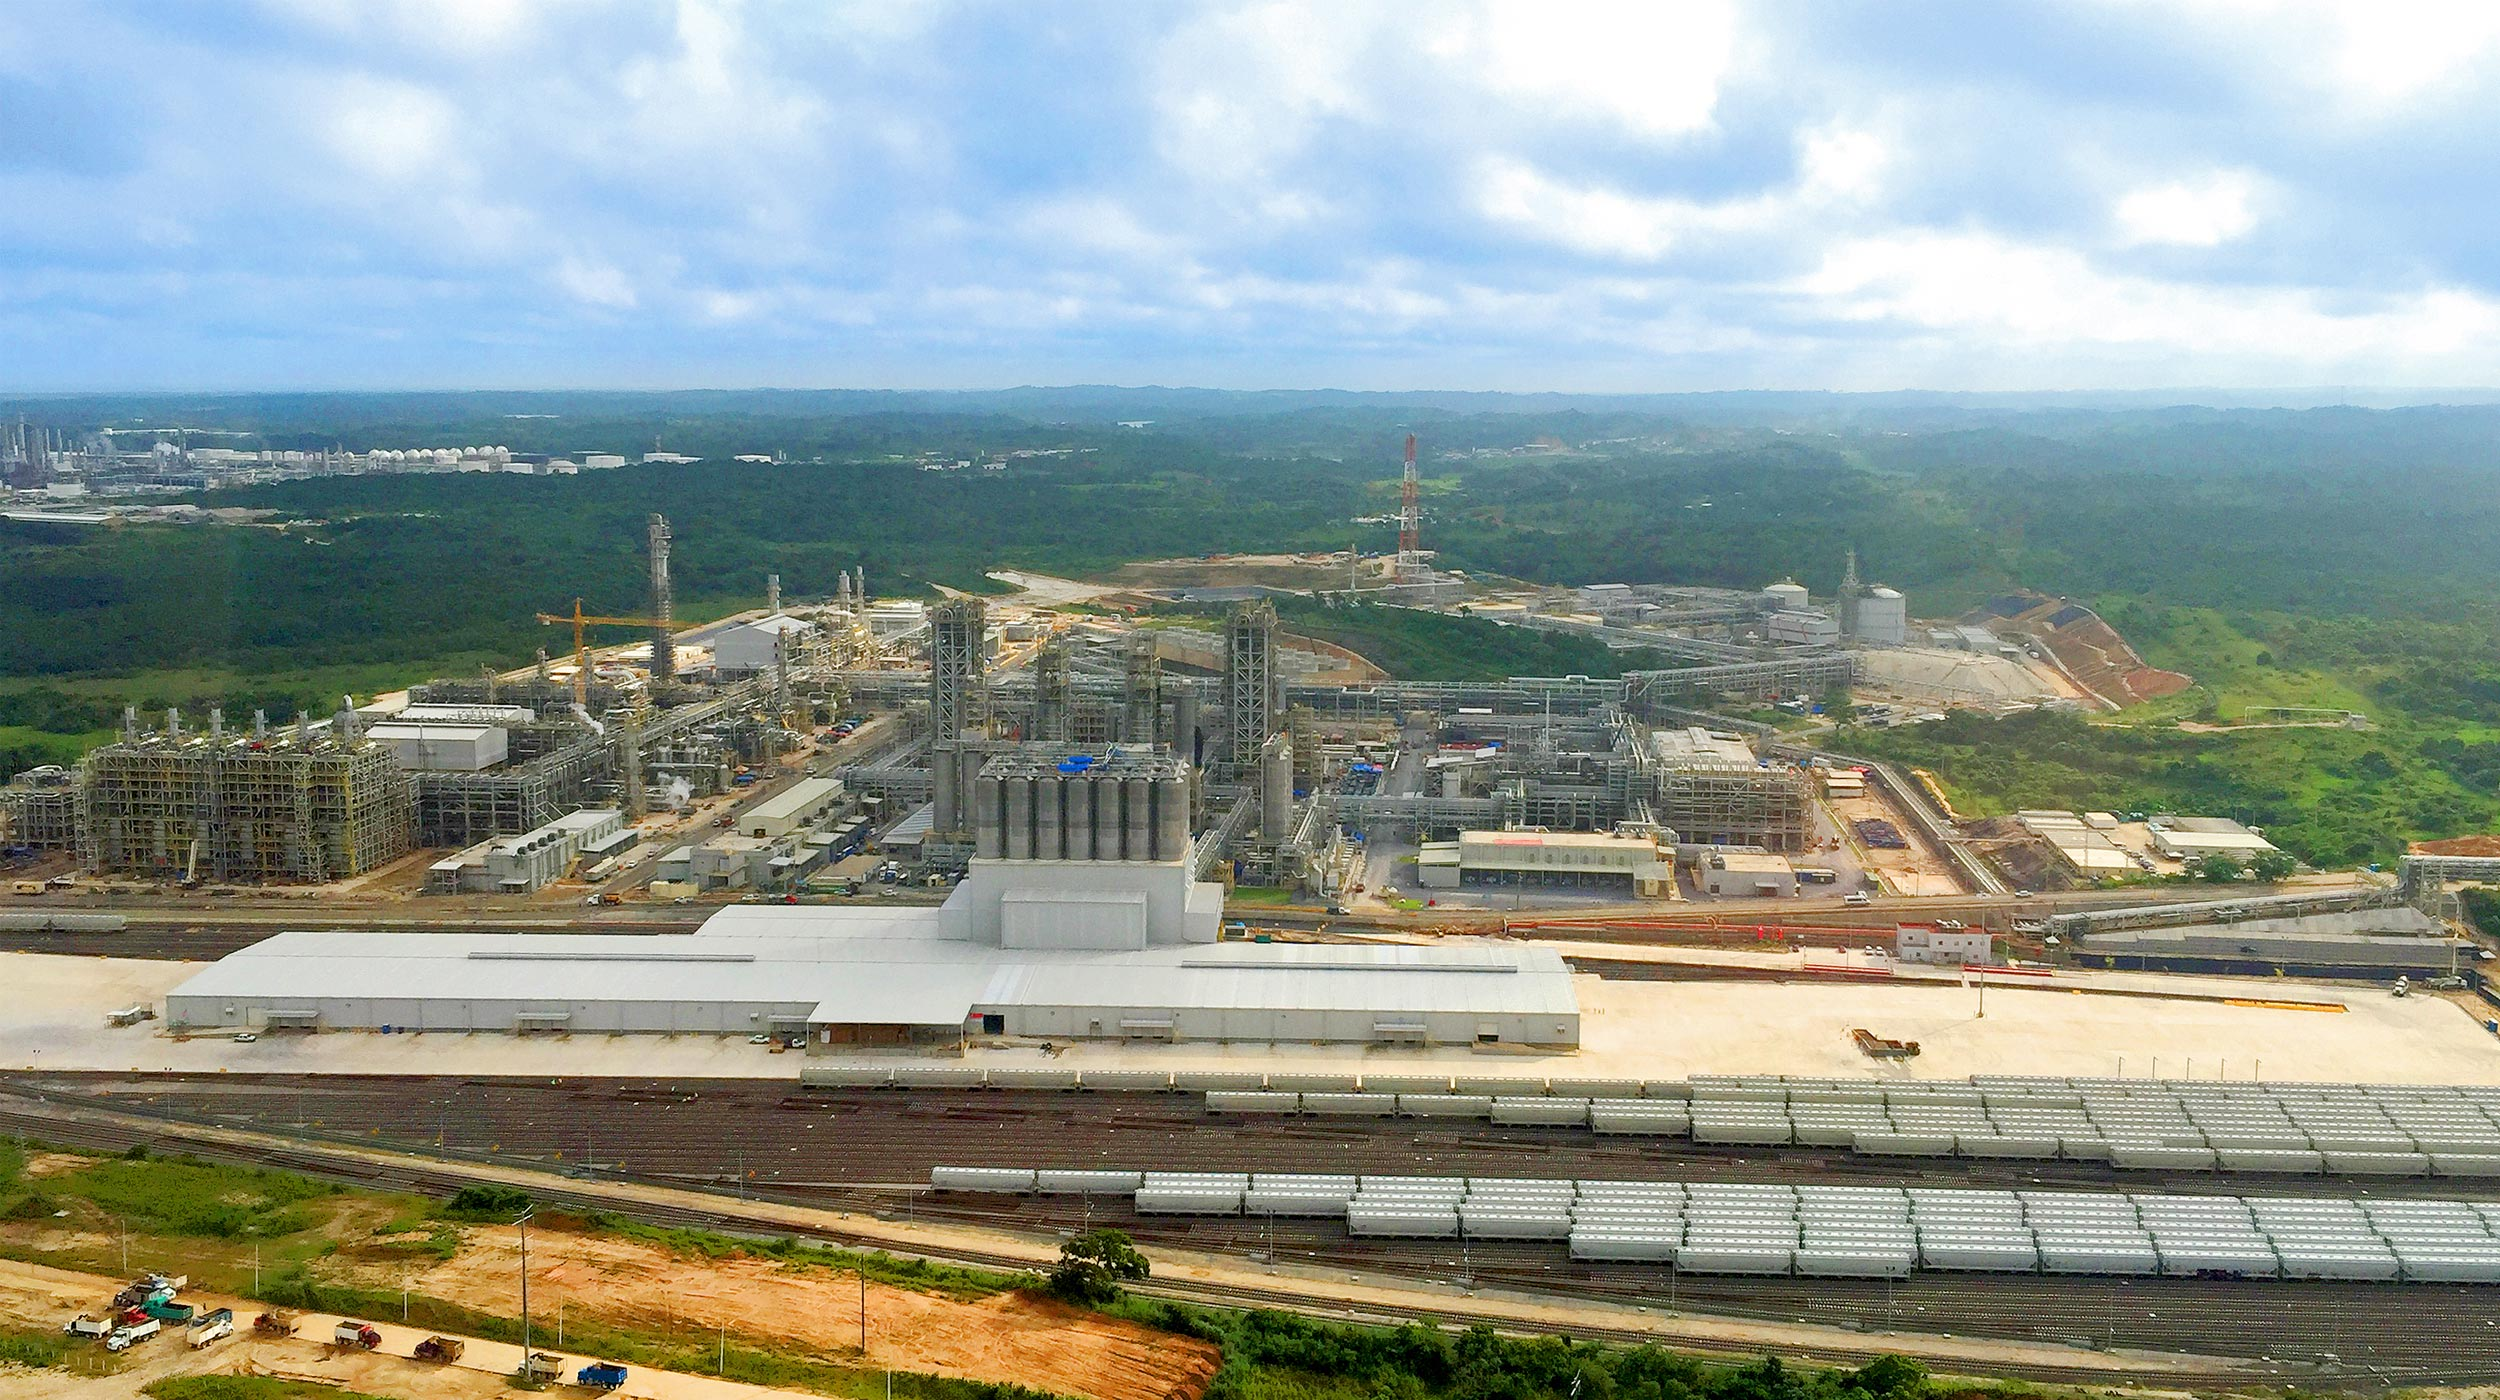 ULMA played a critical role in this project, which is the biggest ethylene production plant in all of Latin America.